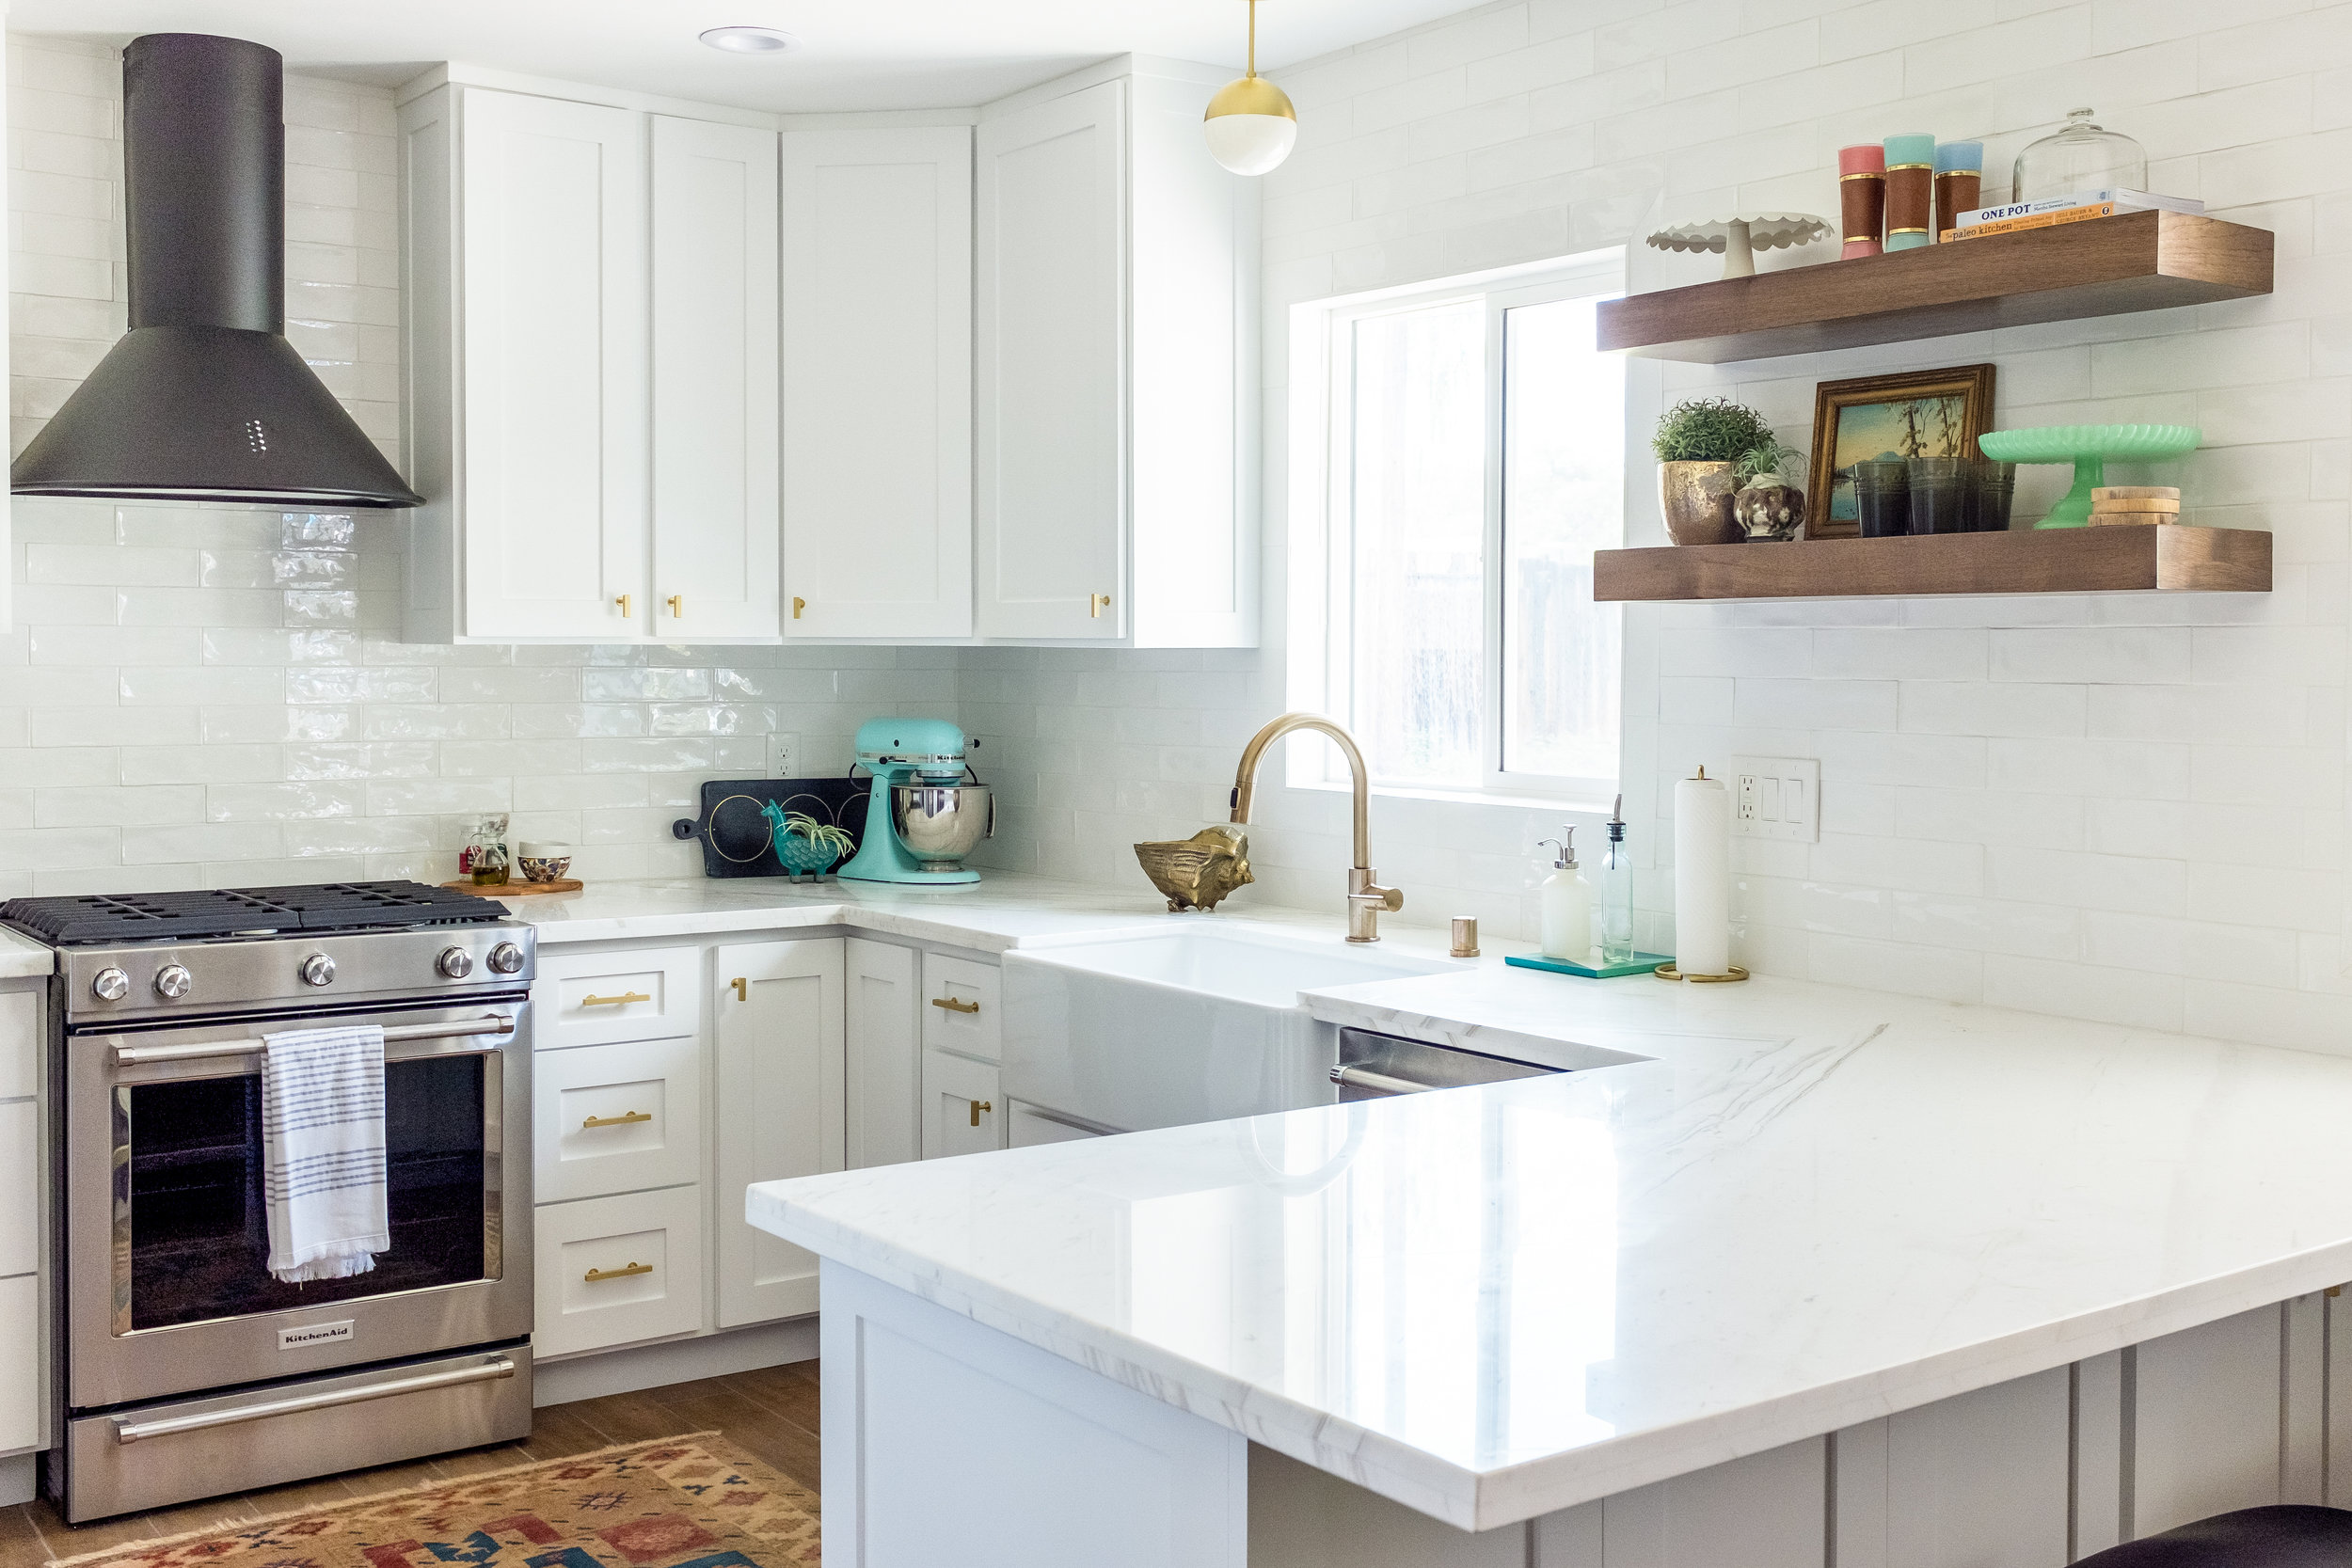 Black and White Kitchen Retro with Floating Shelves and marble counters